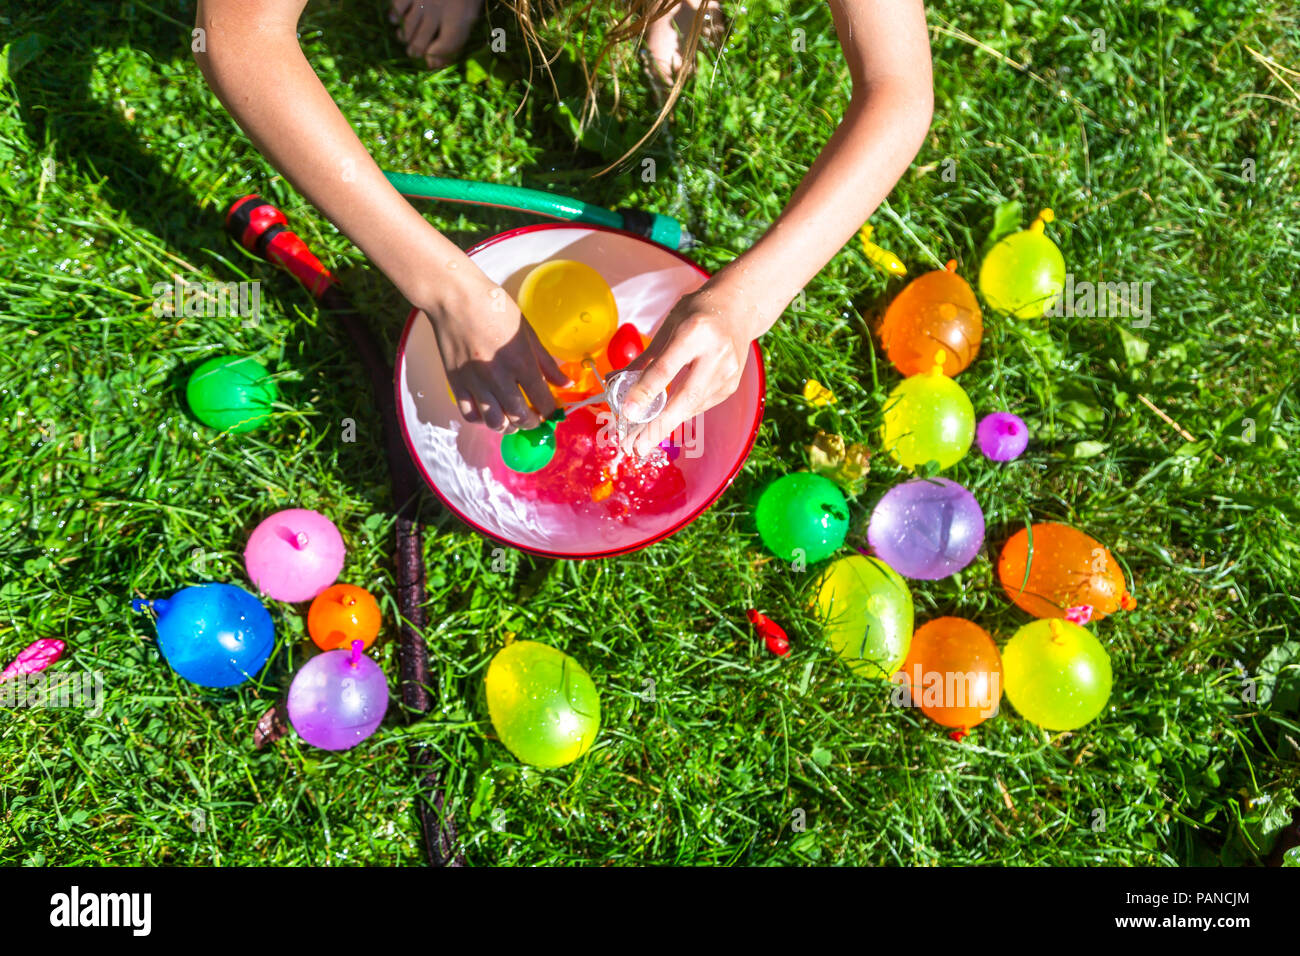 Girl preparing water bombs on a meadow - Stock Image